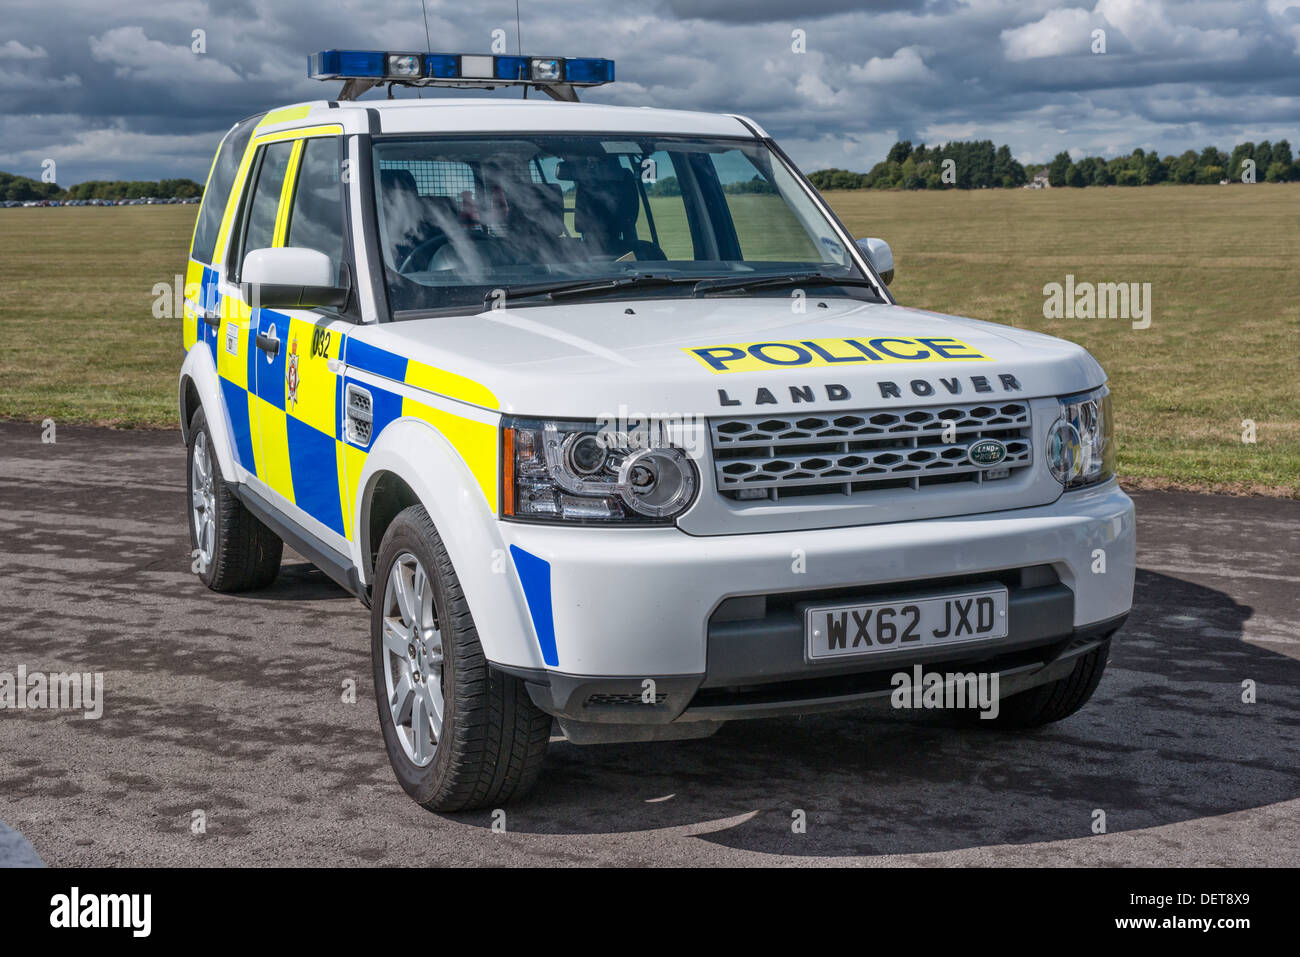 A wiltshire police land rover discovery uk stock image